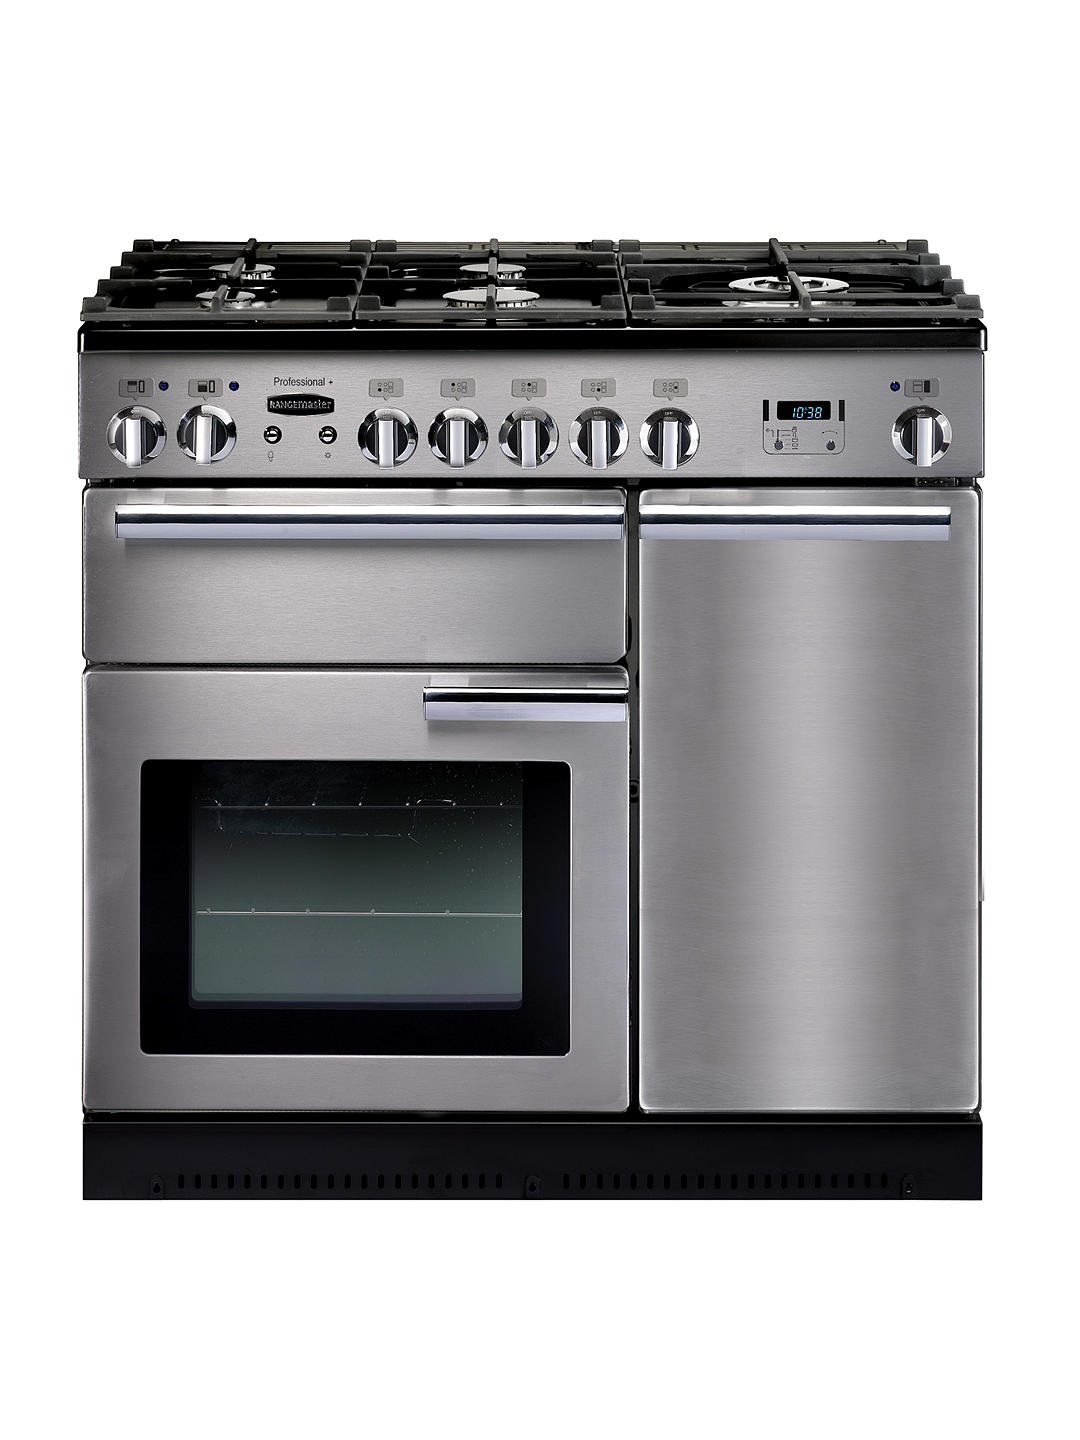 Buy Rangemaster Professional+ 90 Dual Fuel Range Cooker, Stainless Steel/Chrome Trim Online at johnlewis.com